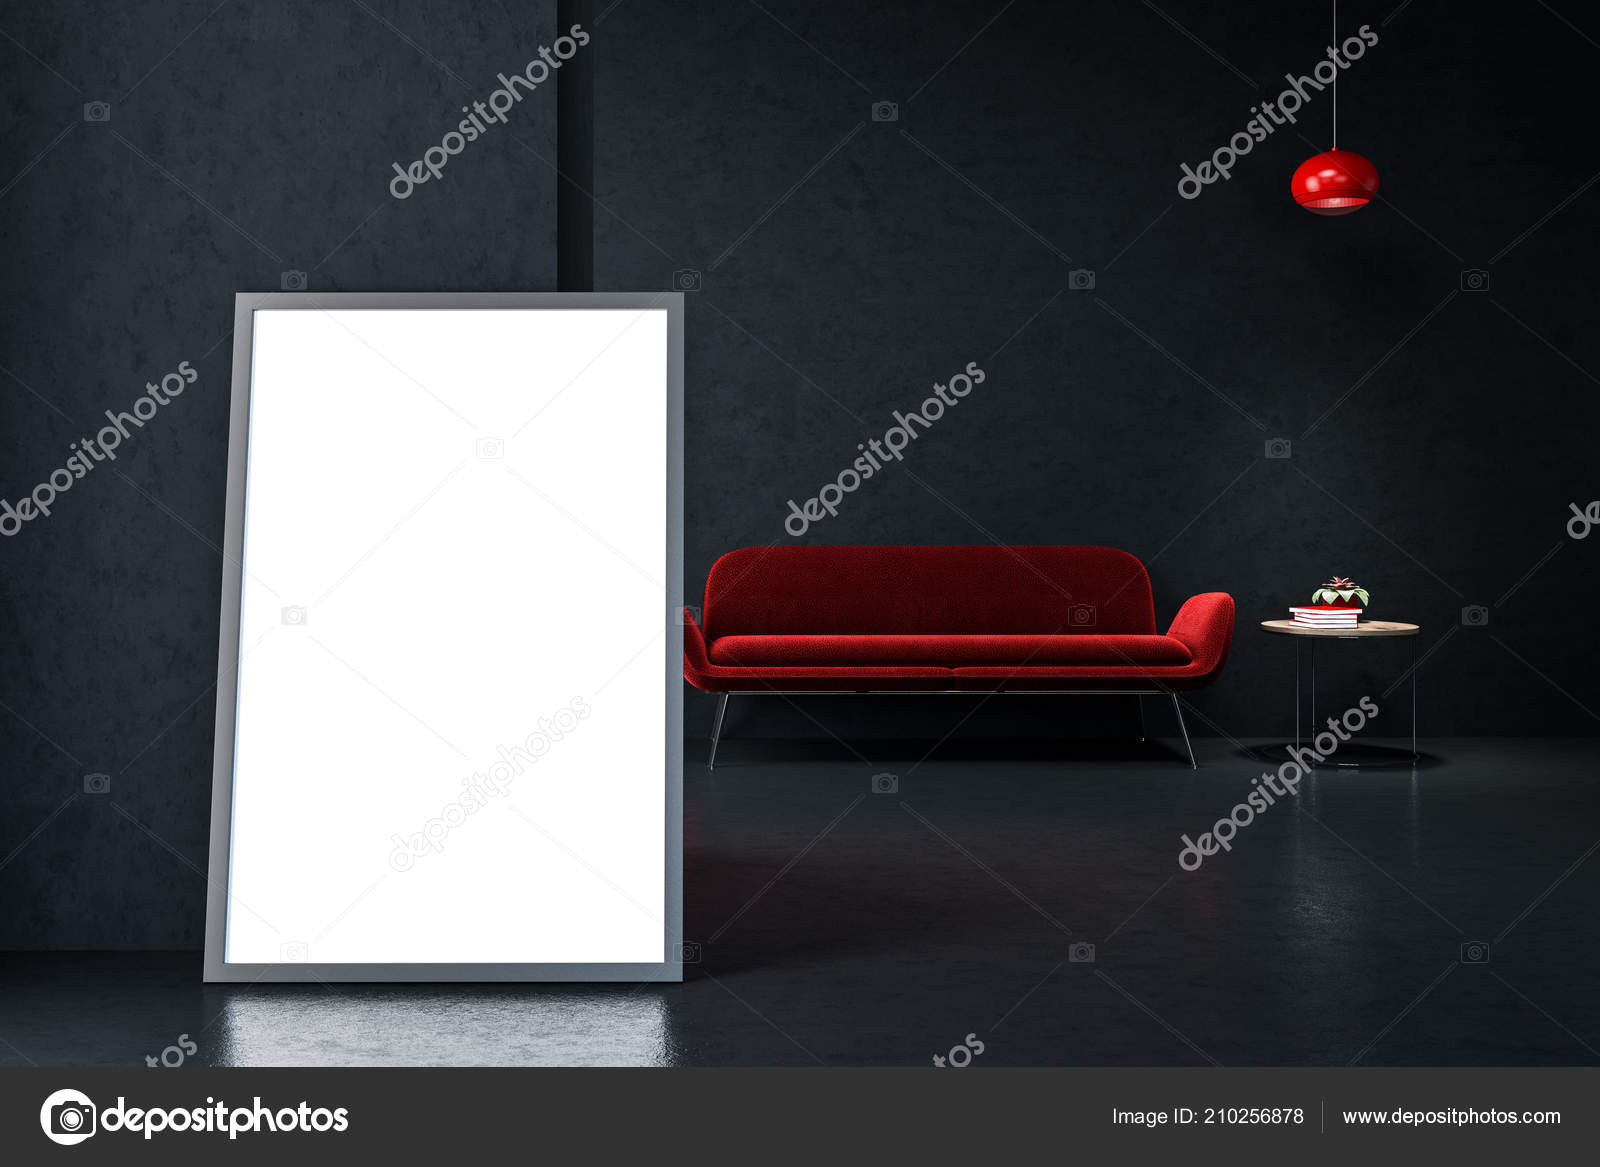 Awesome Bright Red Sofa Standing Empty Black Room Stylish Ceiling Download Free Architecture Designs Scobabritishbridgeorg